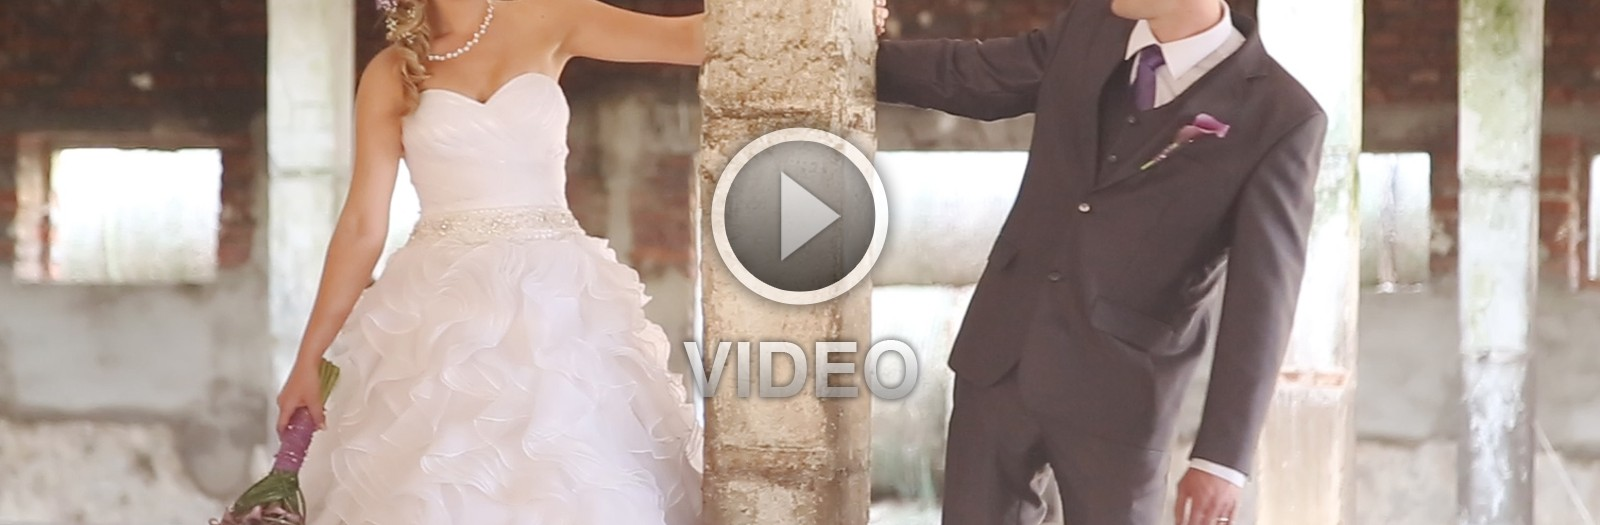 Martinka & Ondra - 16.8.2014 video